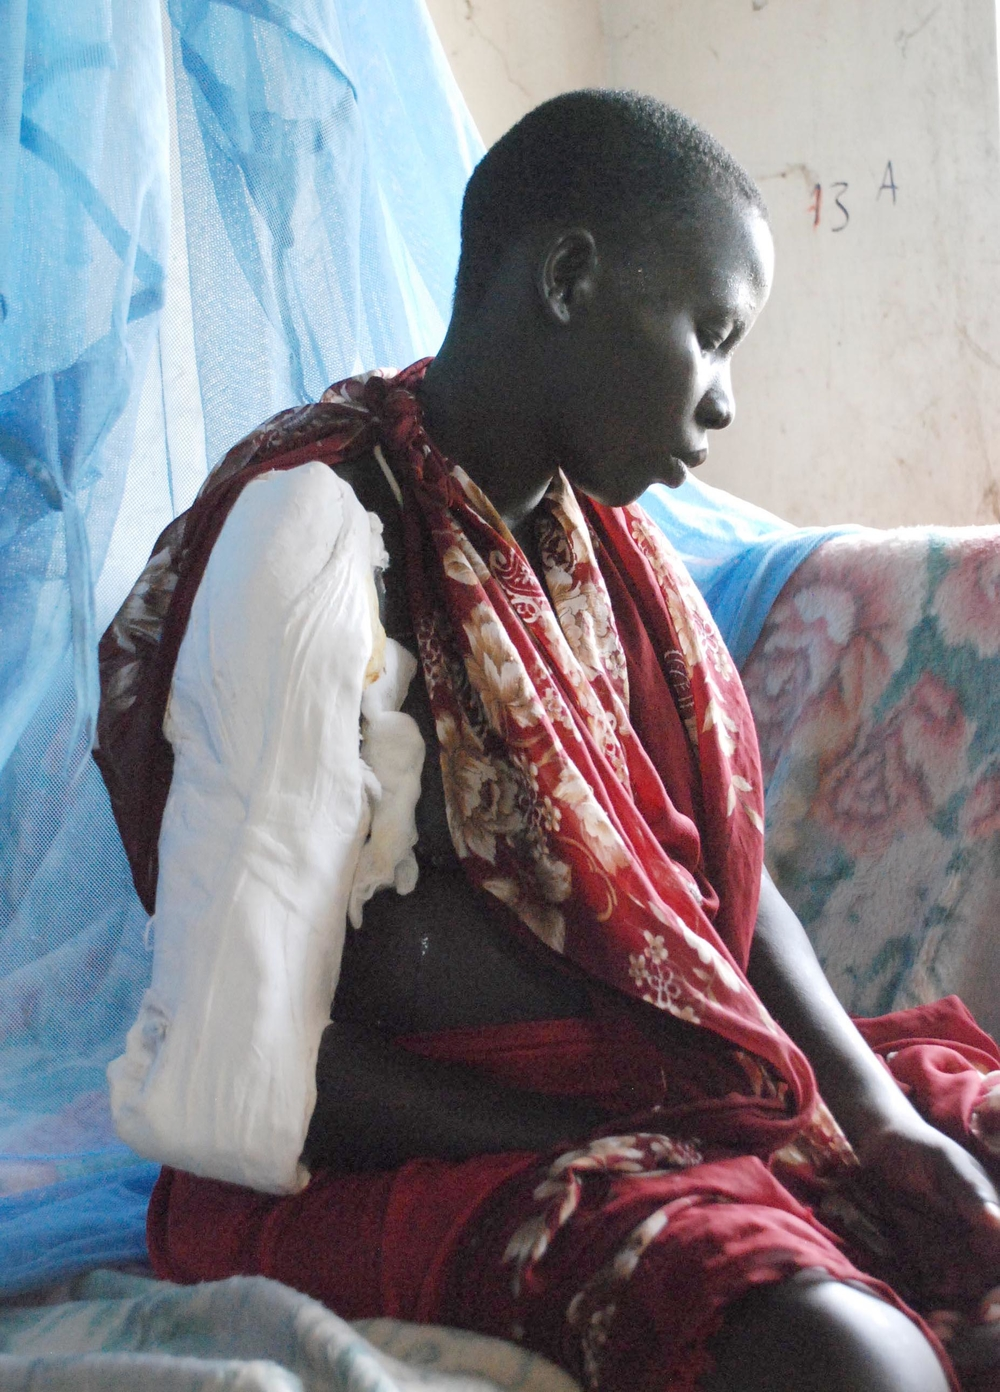 A southern Sudanese woman recovers in Akobo hospital from gunshot wound to her arm and a spear thrust in her back in this 7th August photograph. The woman, who is pregnant, survived a massacre at her fishing village in which 185 people were killed